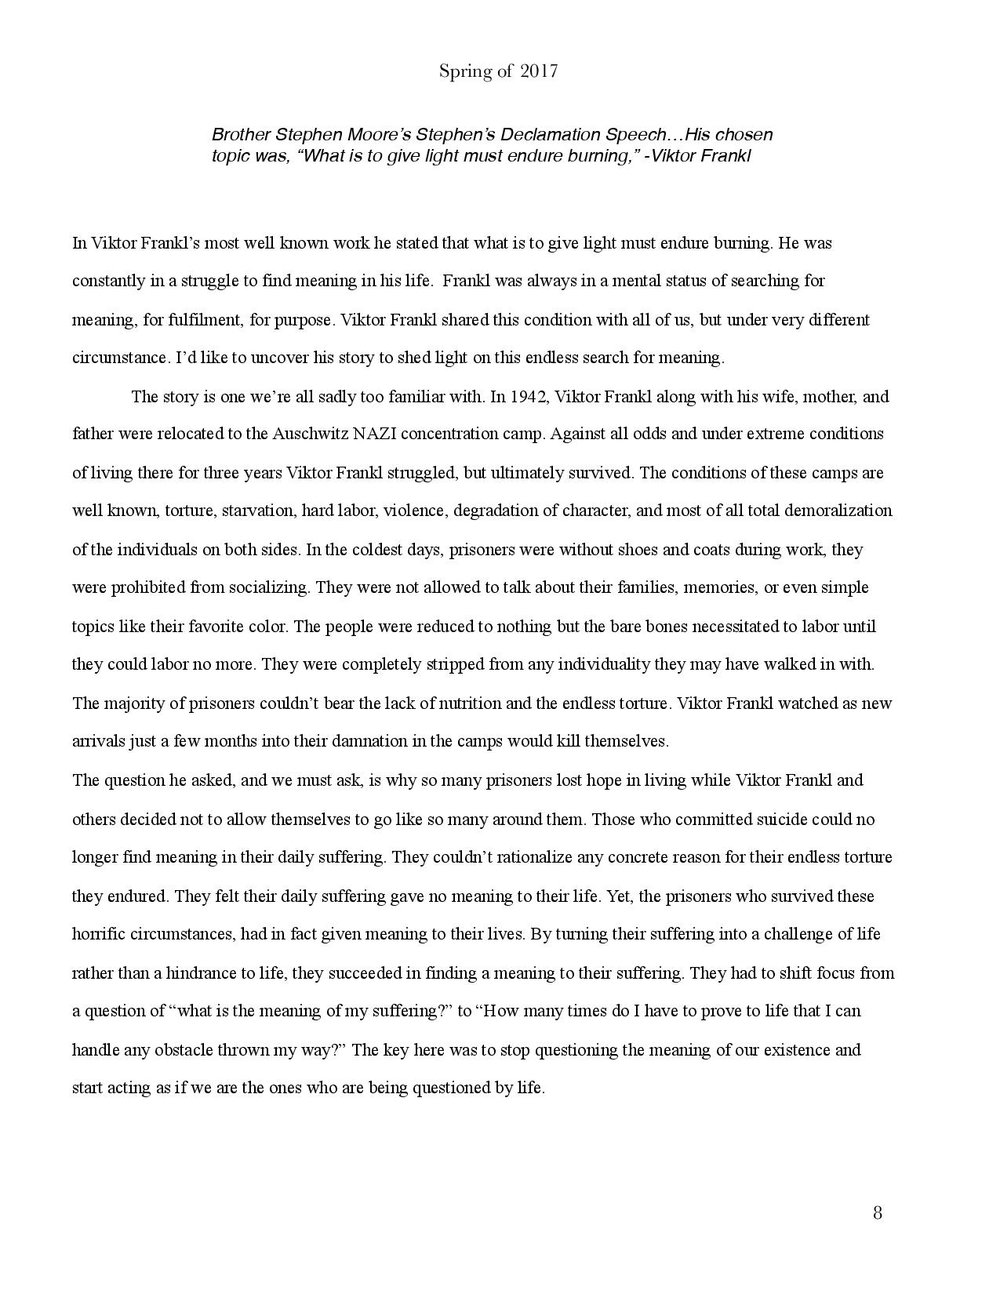 The Orator  (2)-page-008.jpg